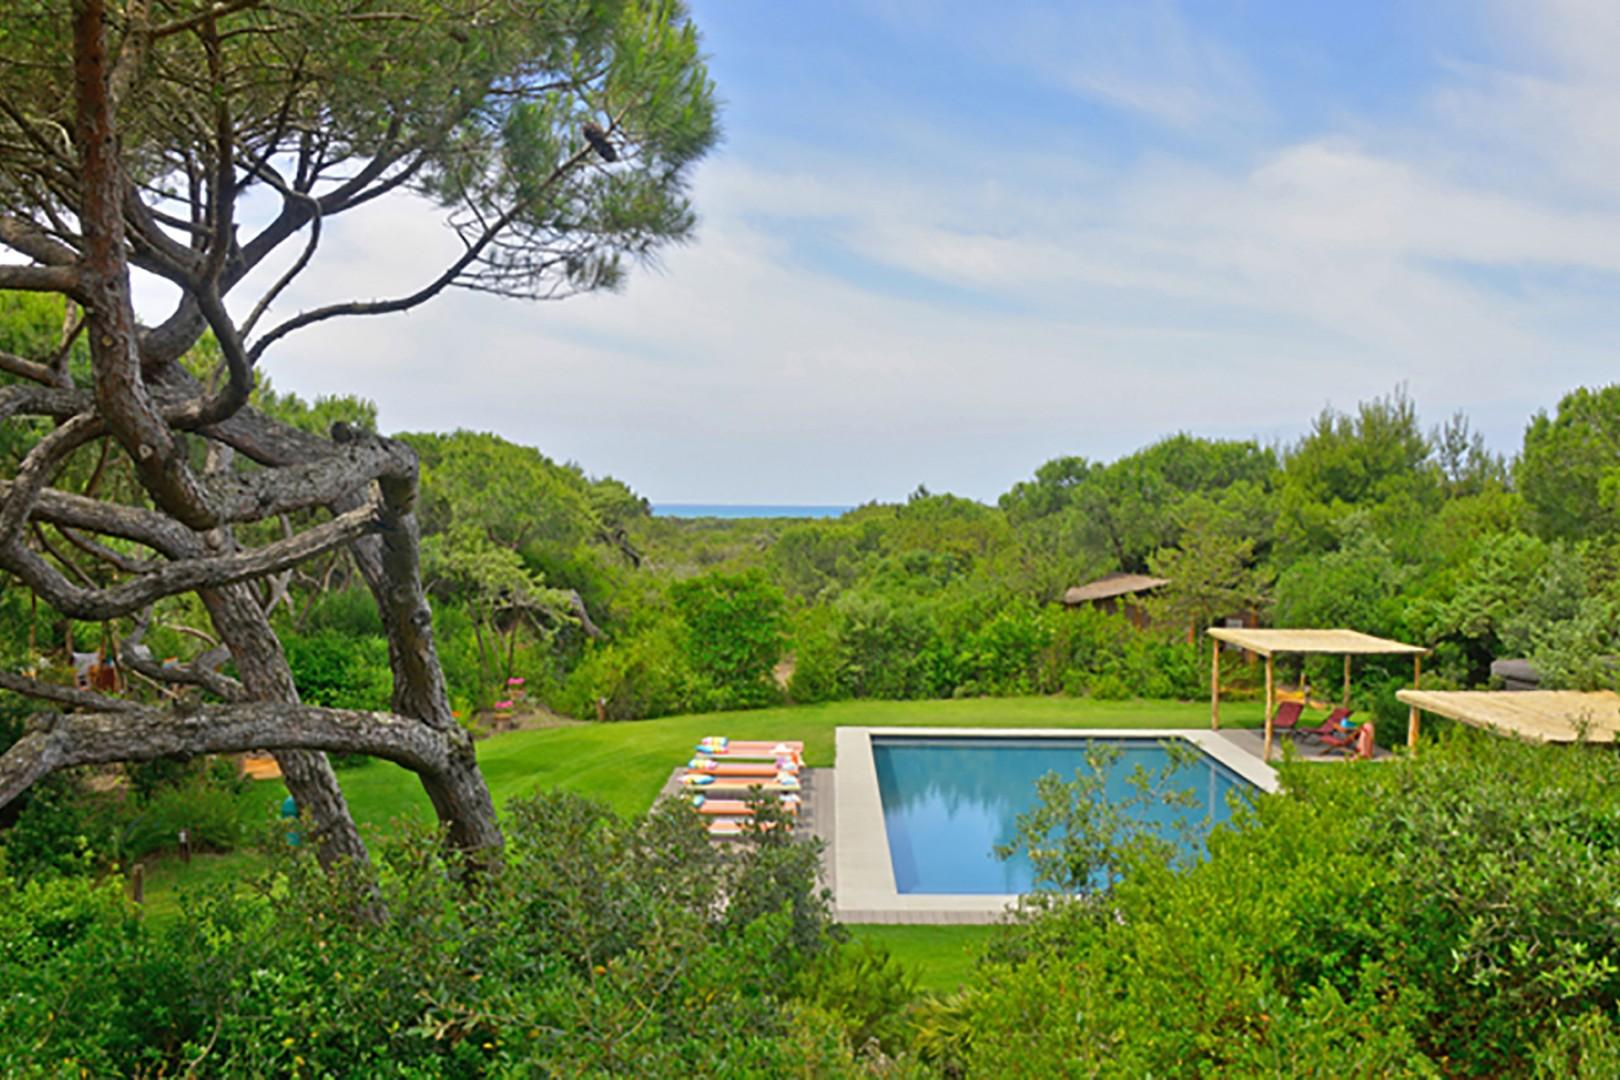 Sparkling swimming pool with the gorgeous blue Mediterranean sea in the backdrop.